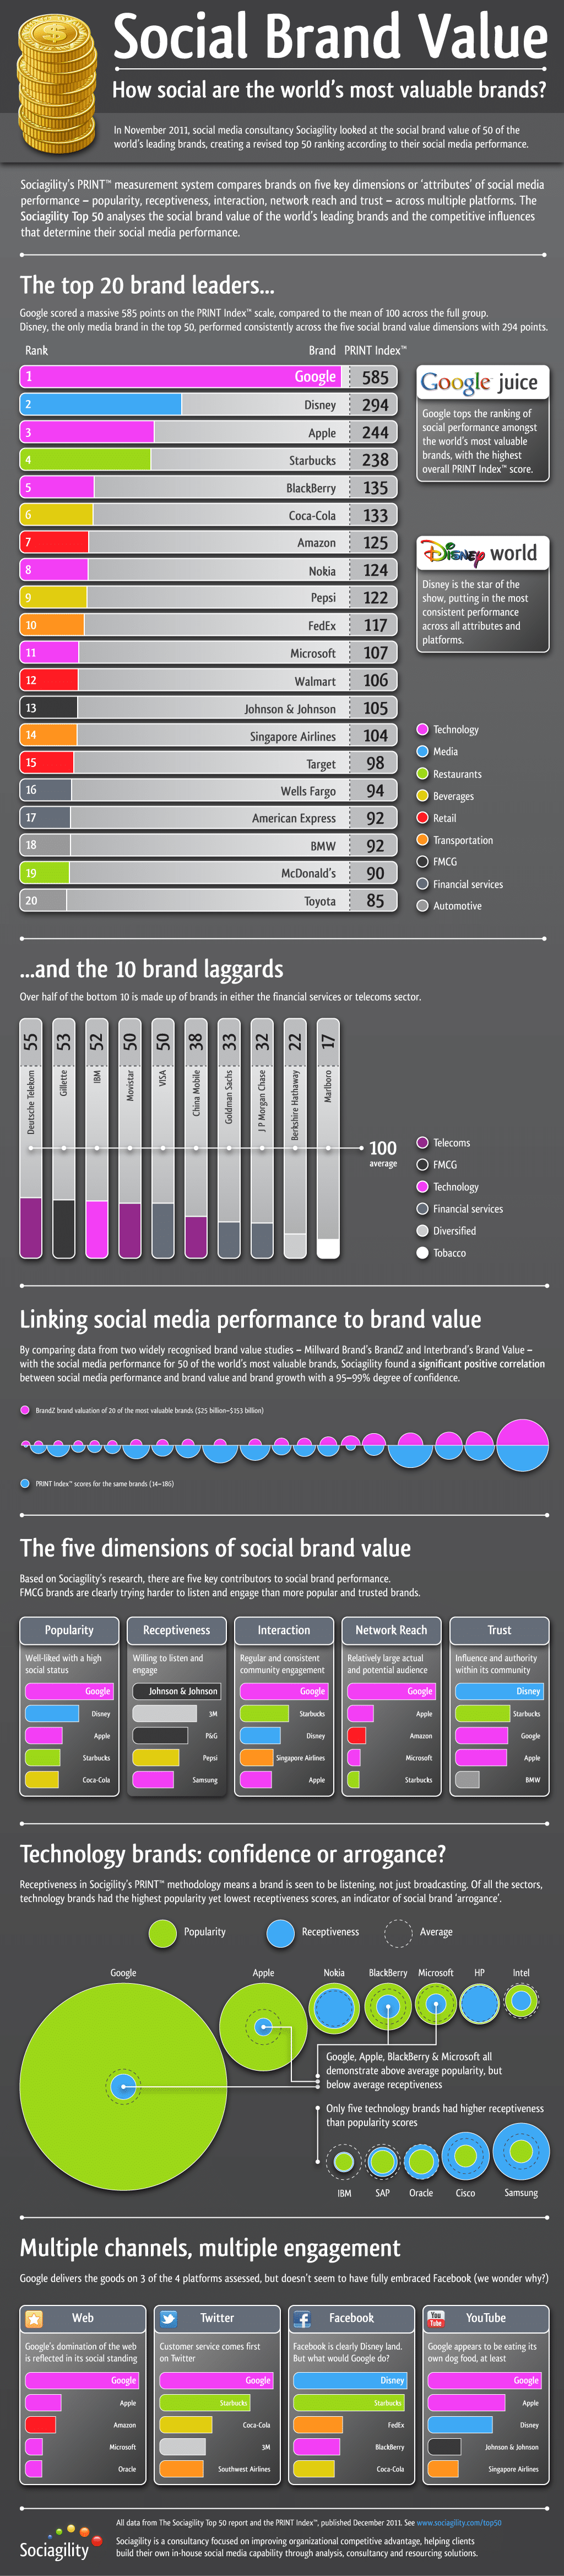 top-50-social-brands-infographic